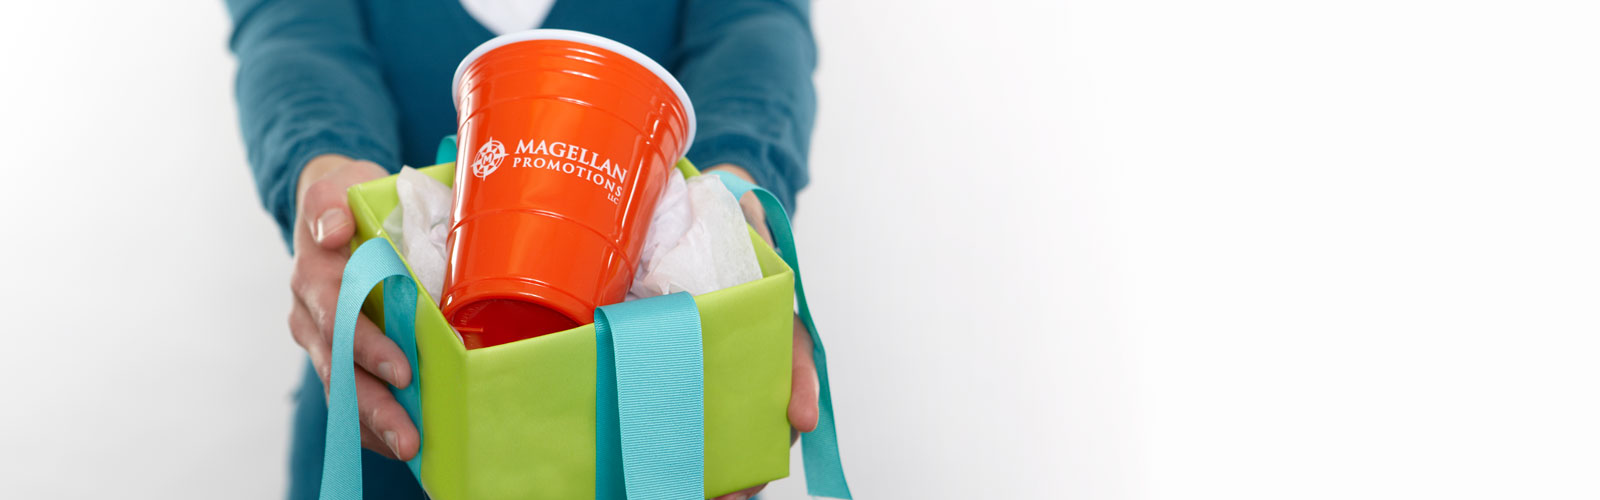 Gift Box with Magellan Promotions Cup